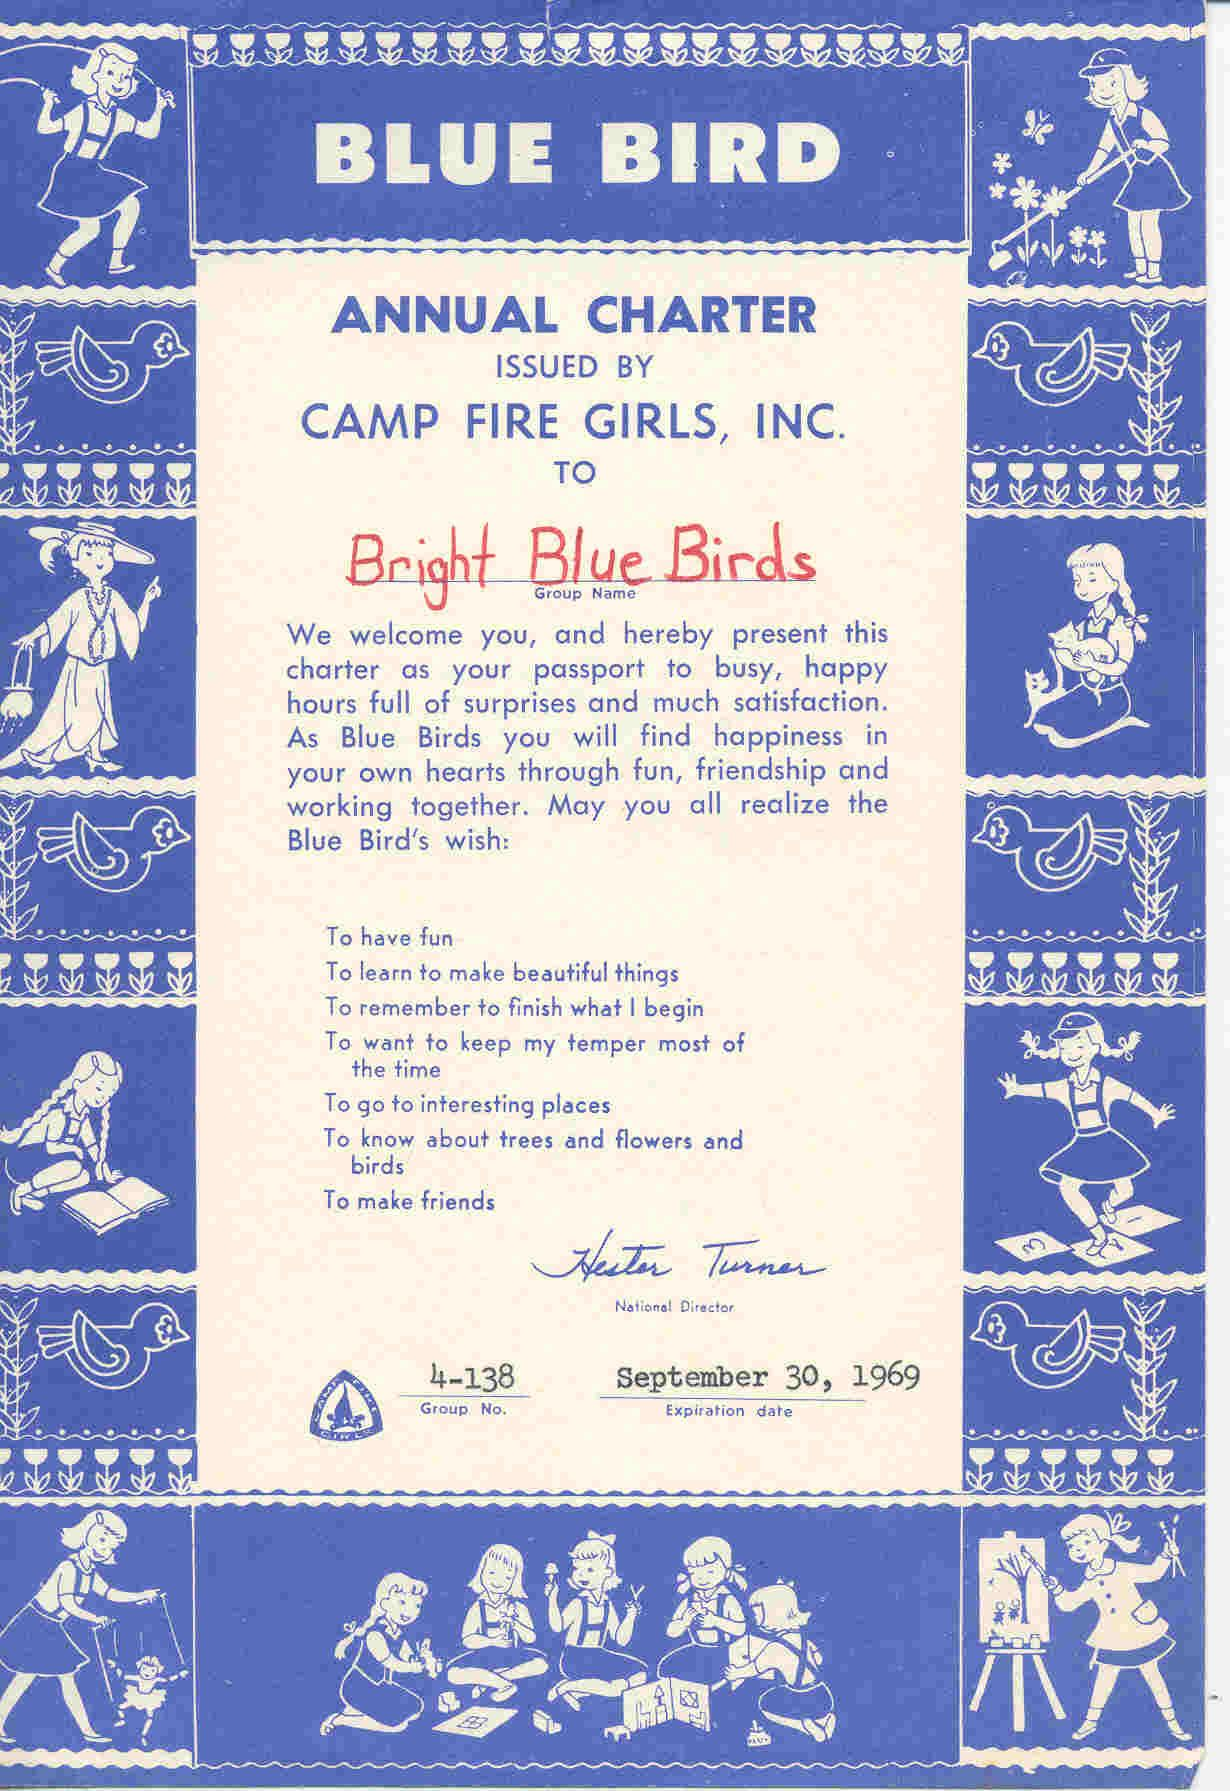 003 Charter Papers, Camp Fire Girls, Blue Birds 1960s Camp